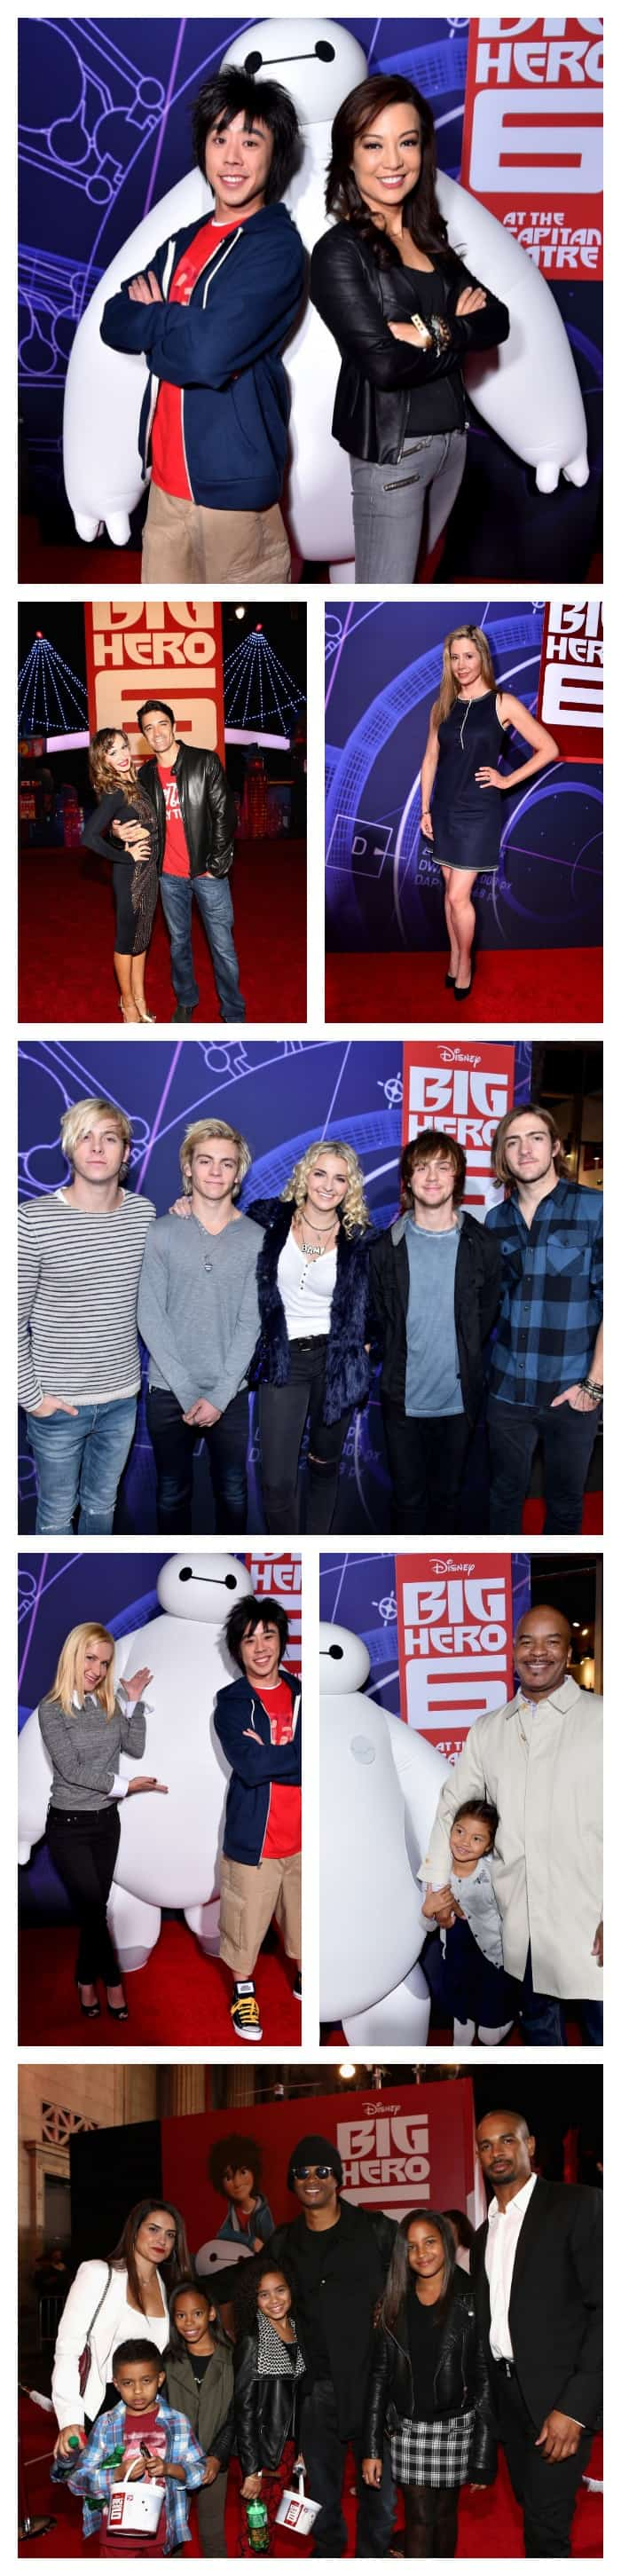 Big Hero 6 Premiere - Celebrities